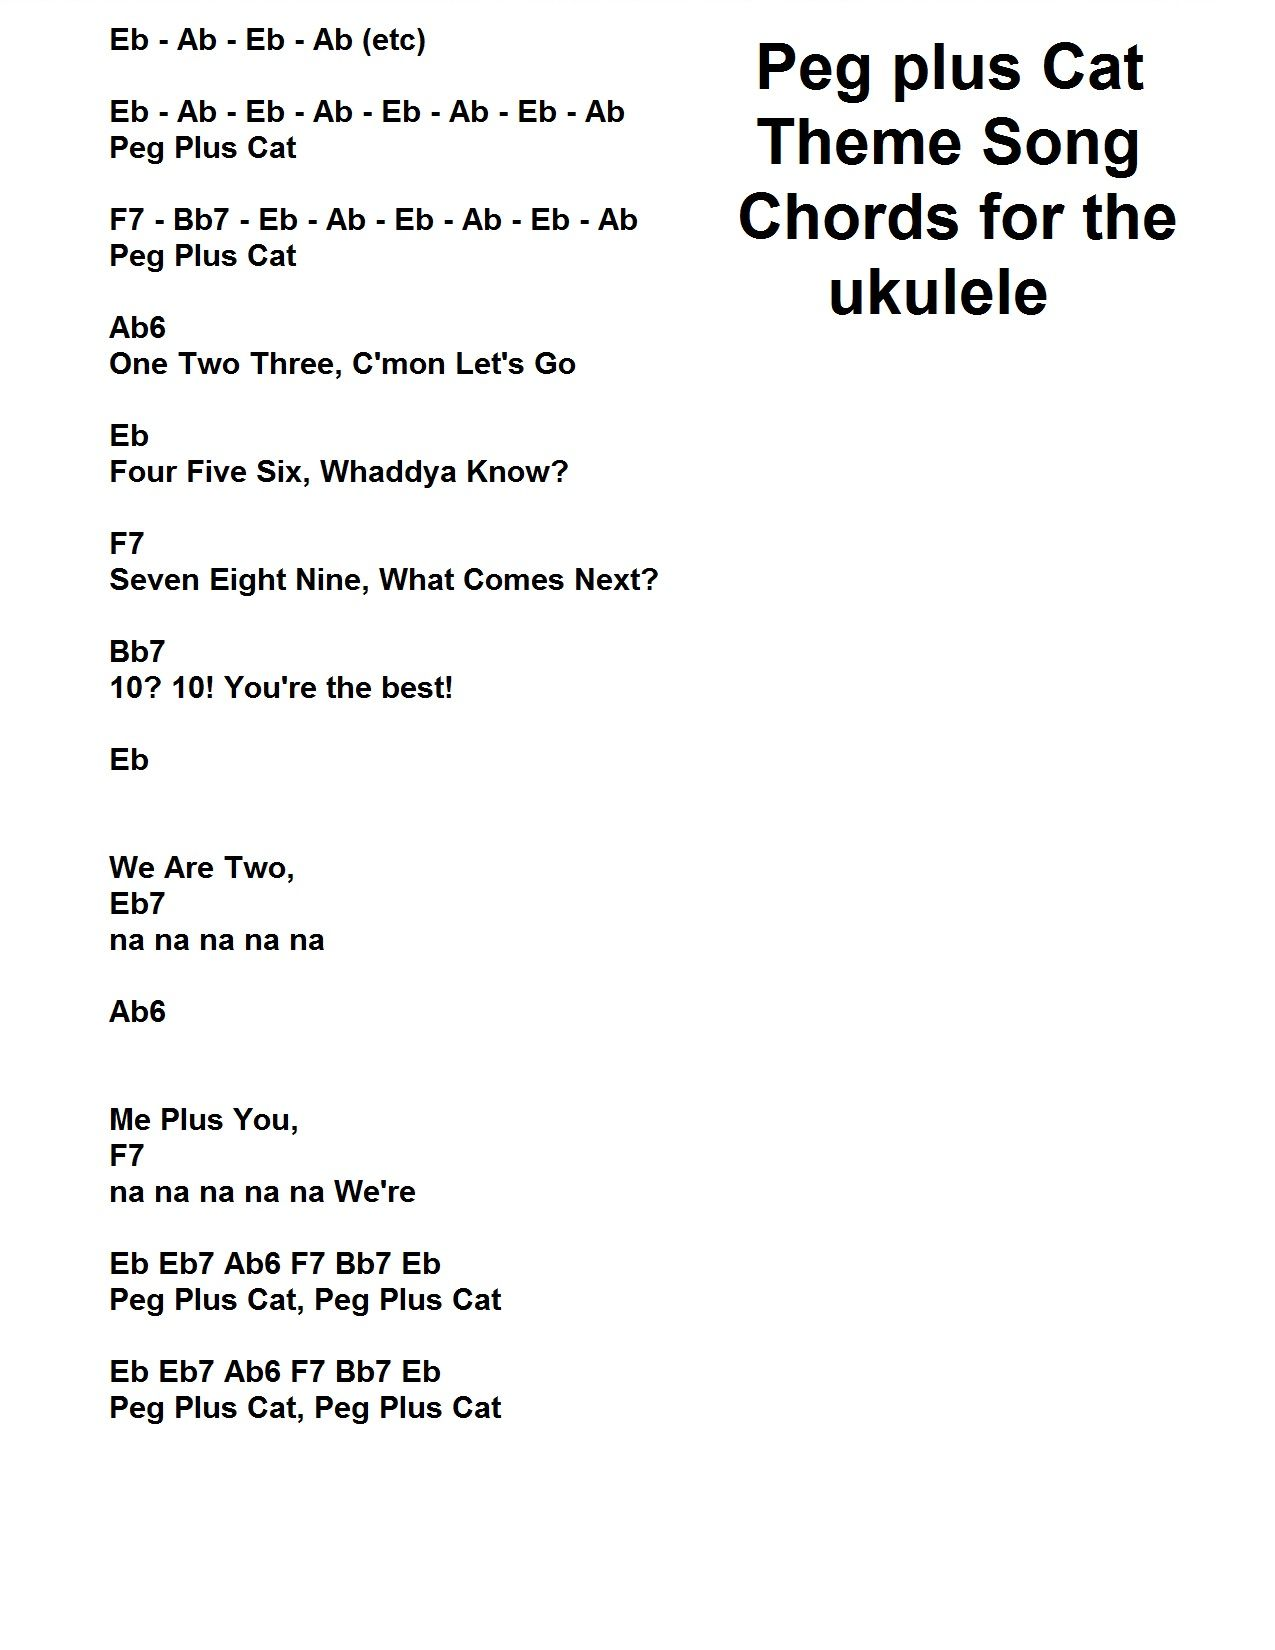 Peg plus cat theme song chords for the ukulele by j walter peg plus cat theme song chords for the ukulele by j walter hawkes hexwebz Gallery